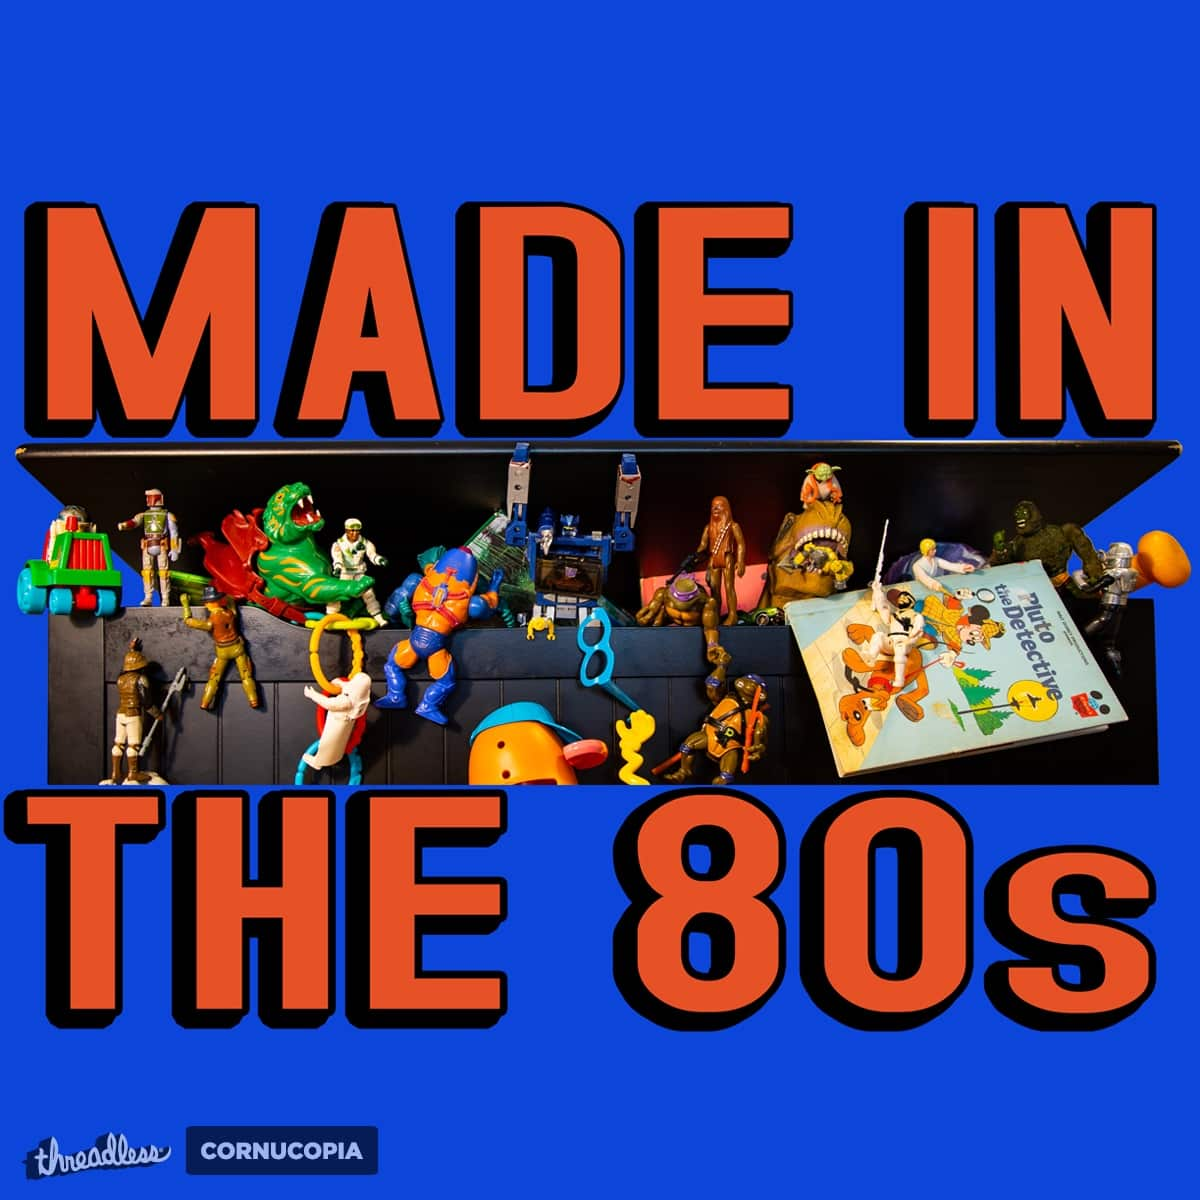 Made In The 80s by HIDENbehindAroc on Threadless